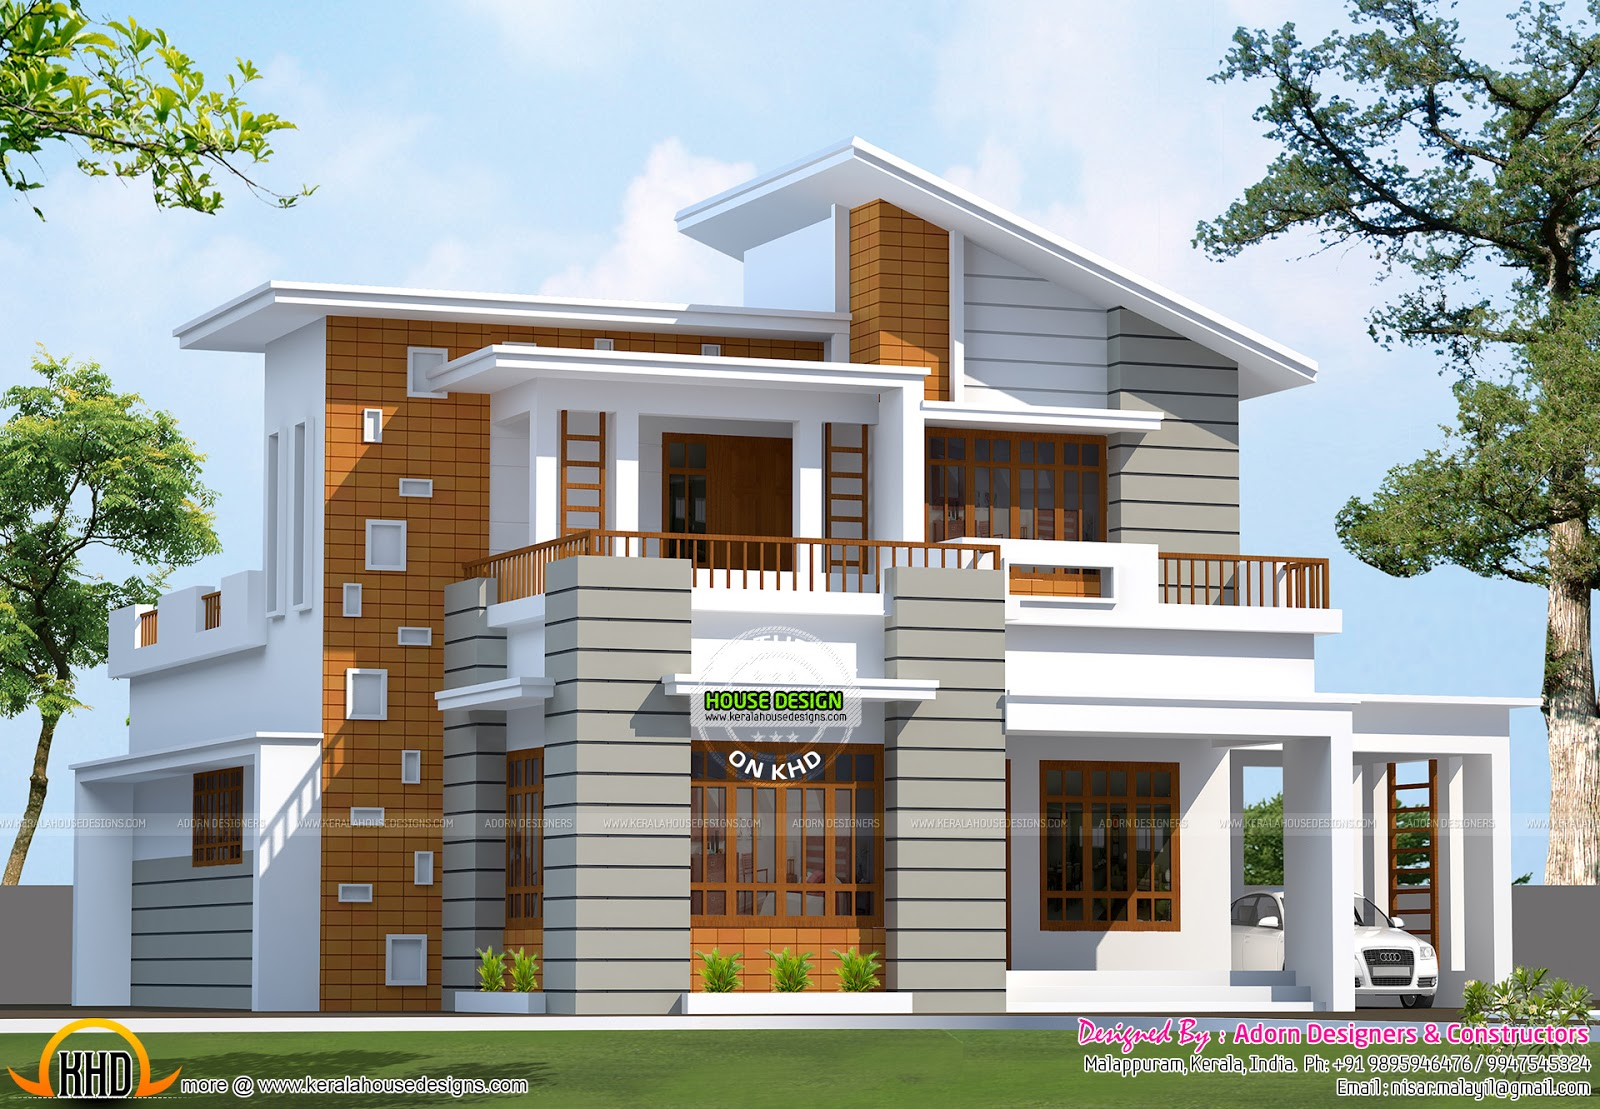 Indian house outlook design modern house - Design of home ...